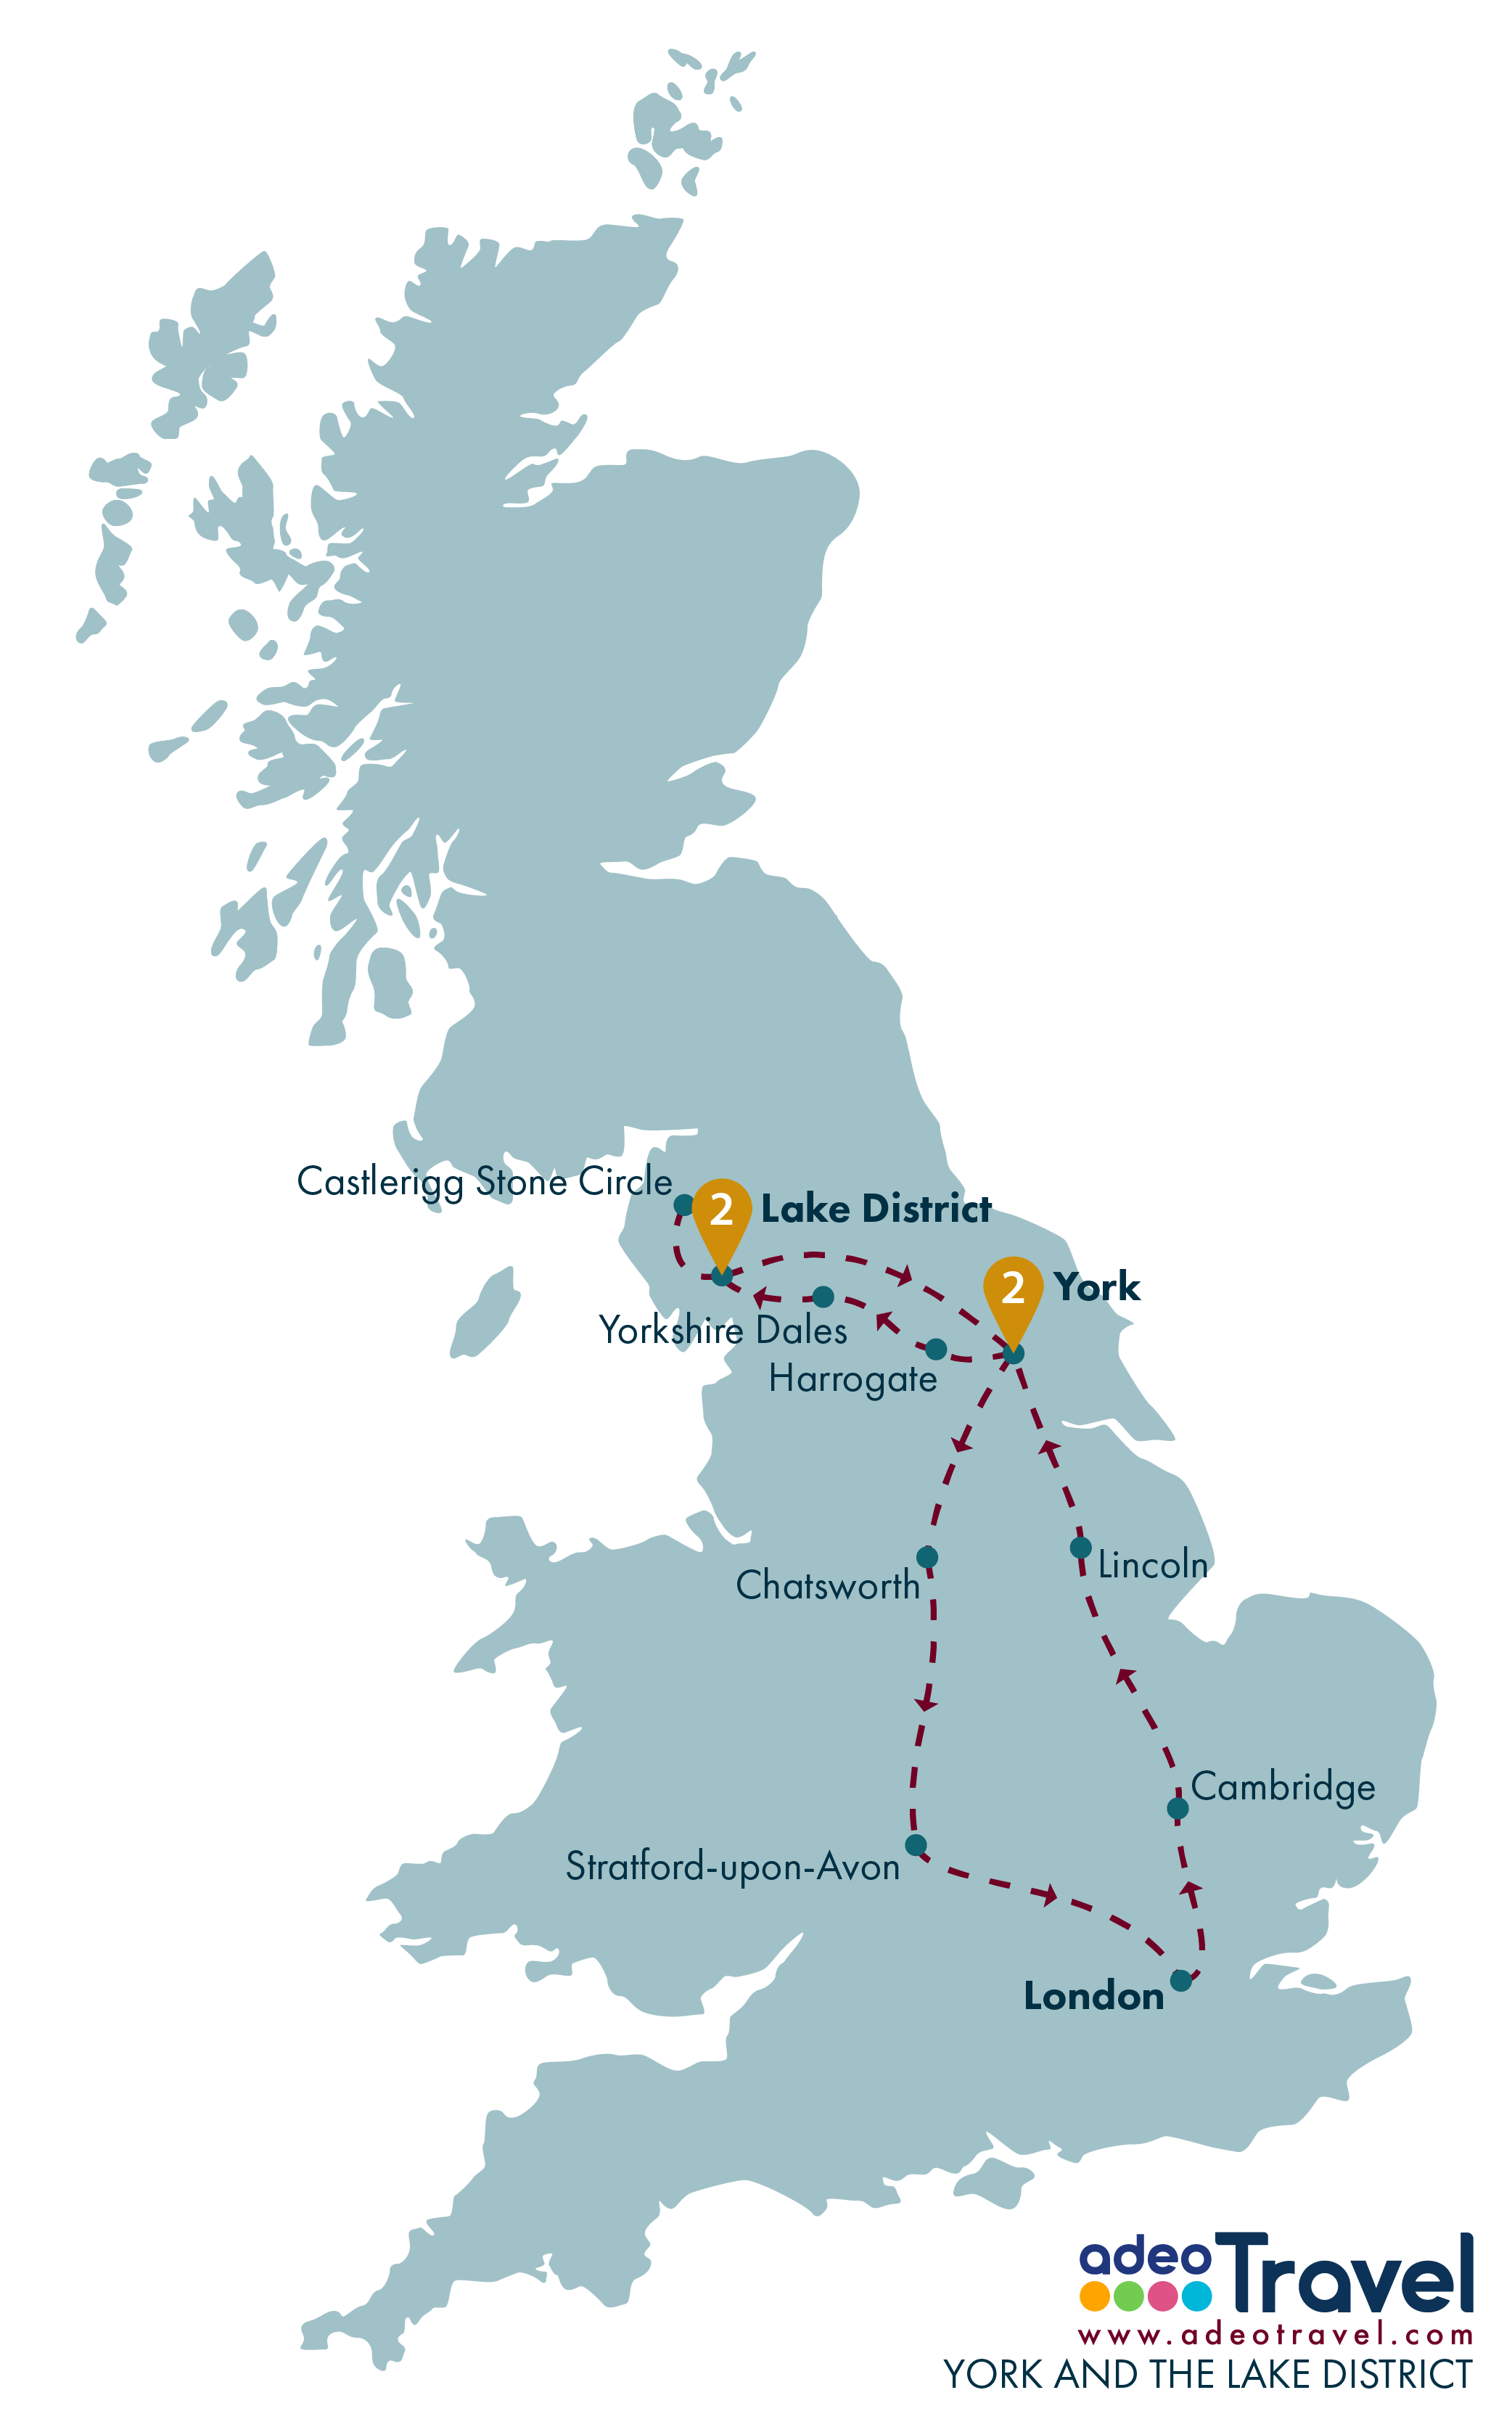 Tour Map - York and the Lake District